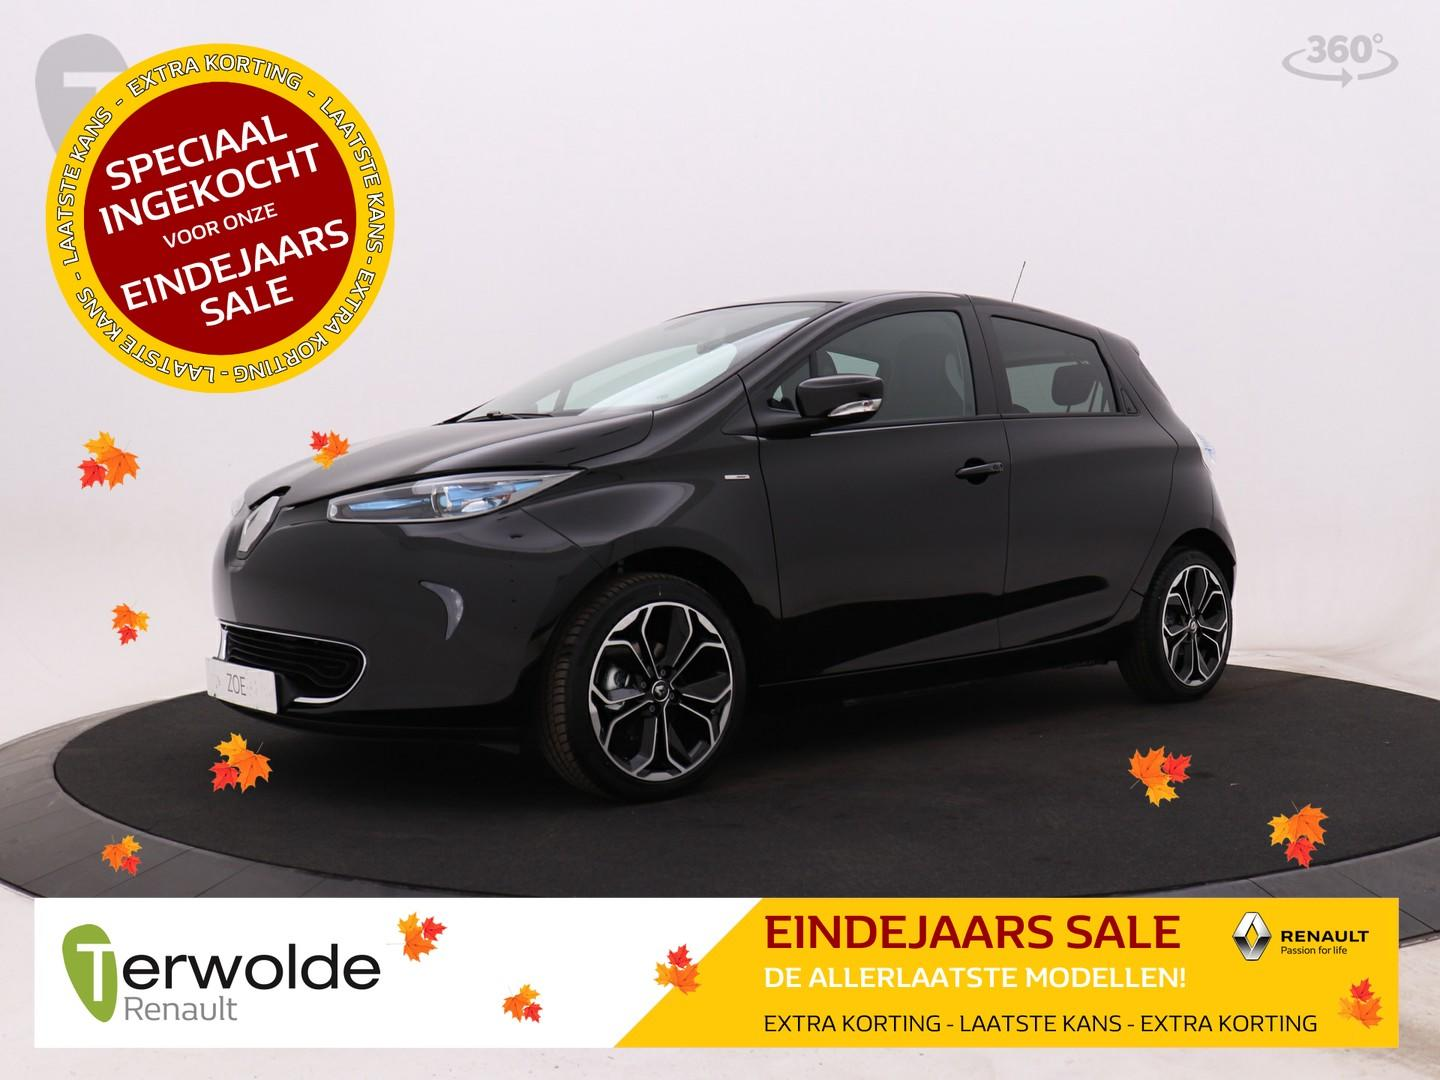 Renault Zoe R110 iconic 41 kwh incl accu